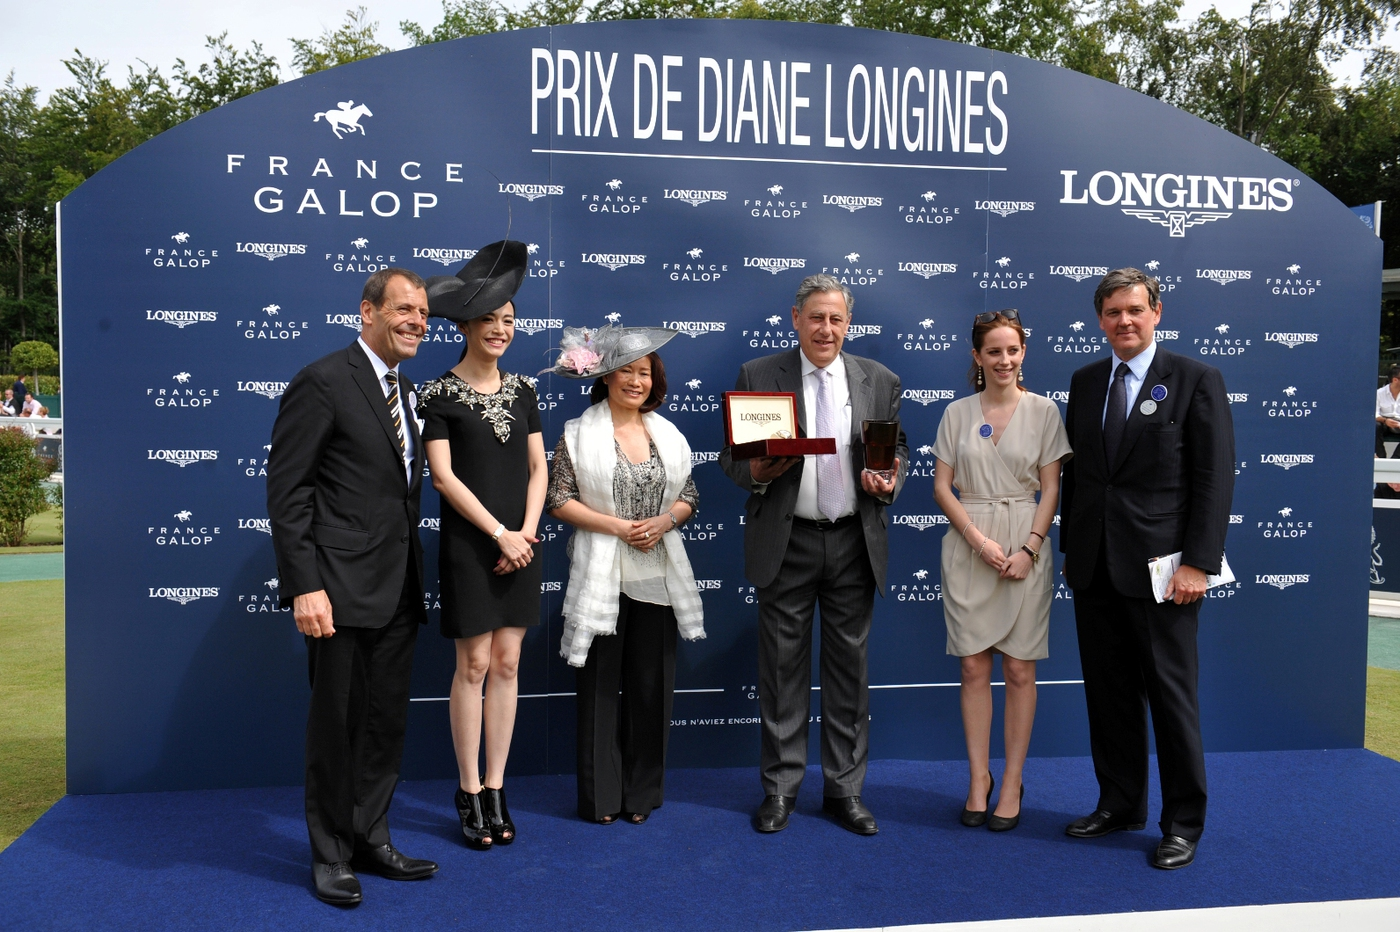 Longines Flat Racing Event: Prix de Diane Longines:  a weekend tinged with elegance 19